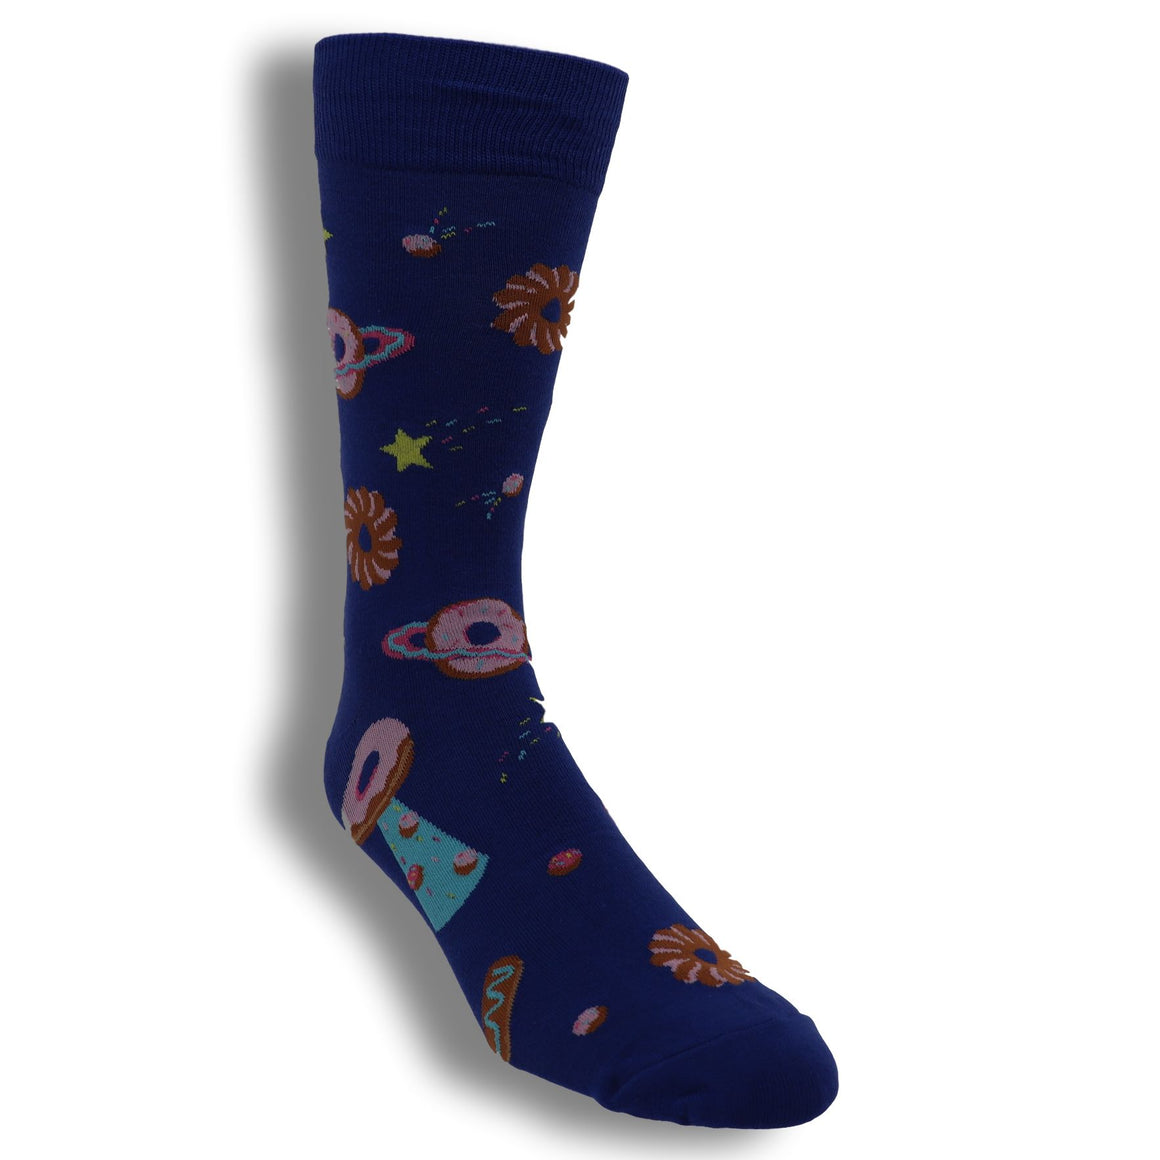 Glazed Galaxy Men's Socks by Sock it to Me - The Sock Spot